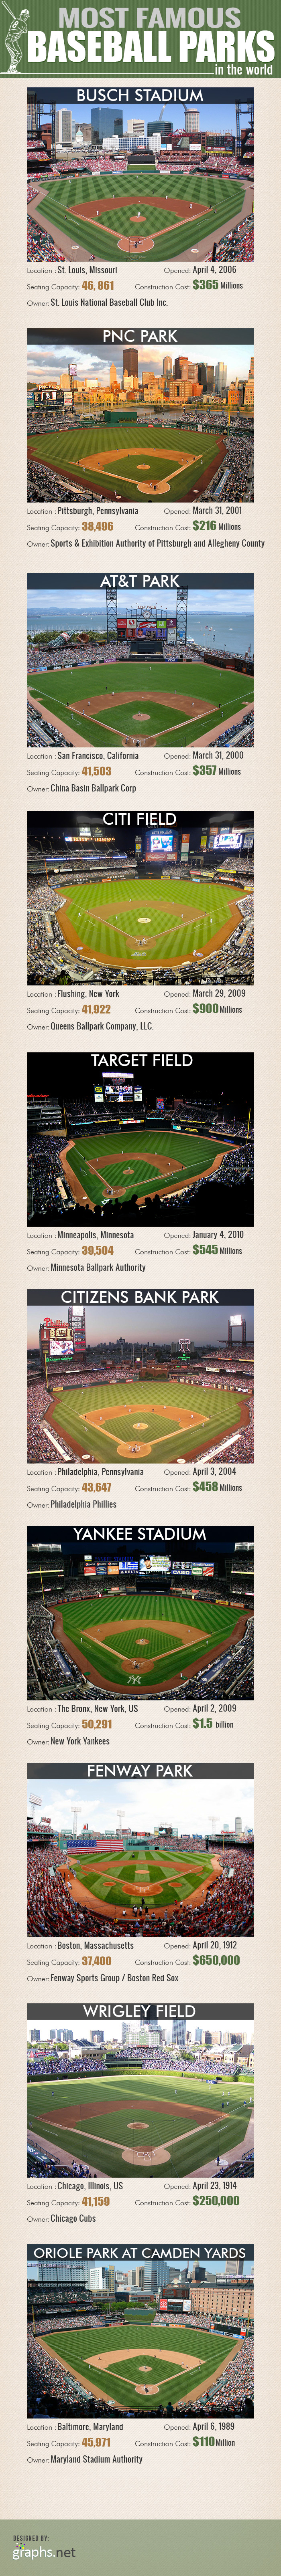 Most Famous Baseball Parks in the World